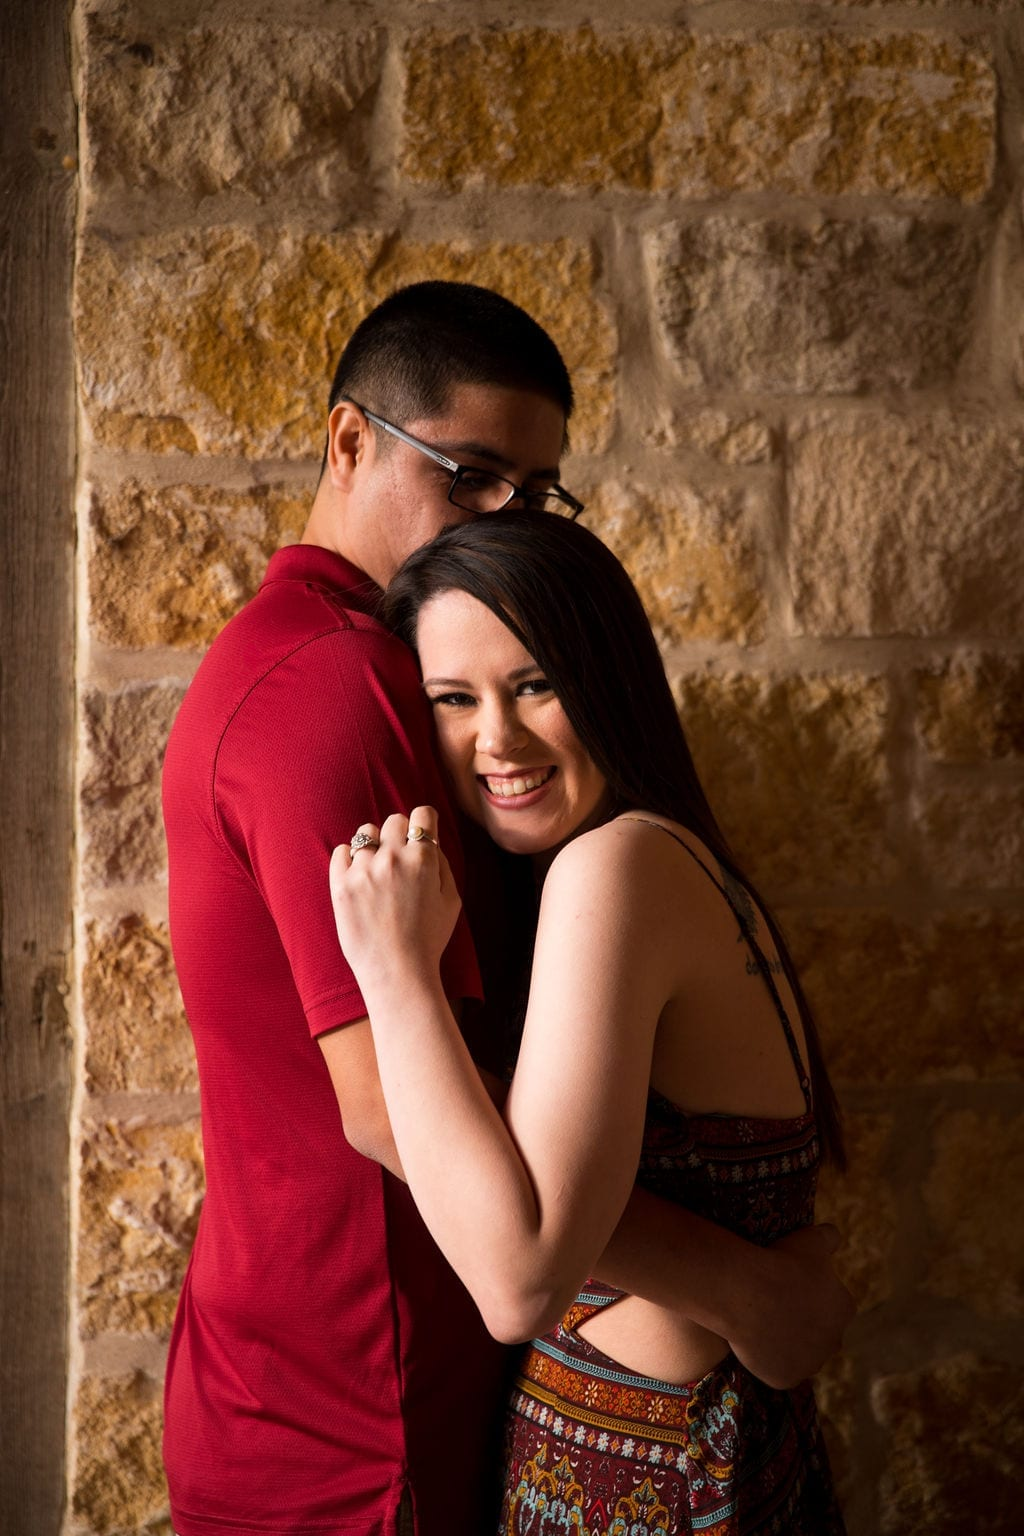 Aamber and Alex engagement session in Gruene Tx breezeway warm light